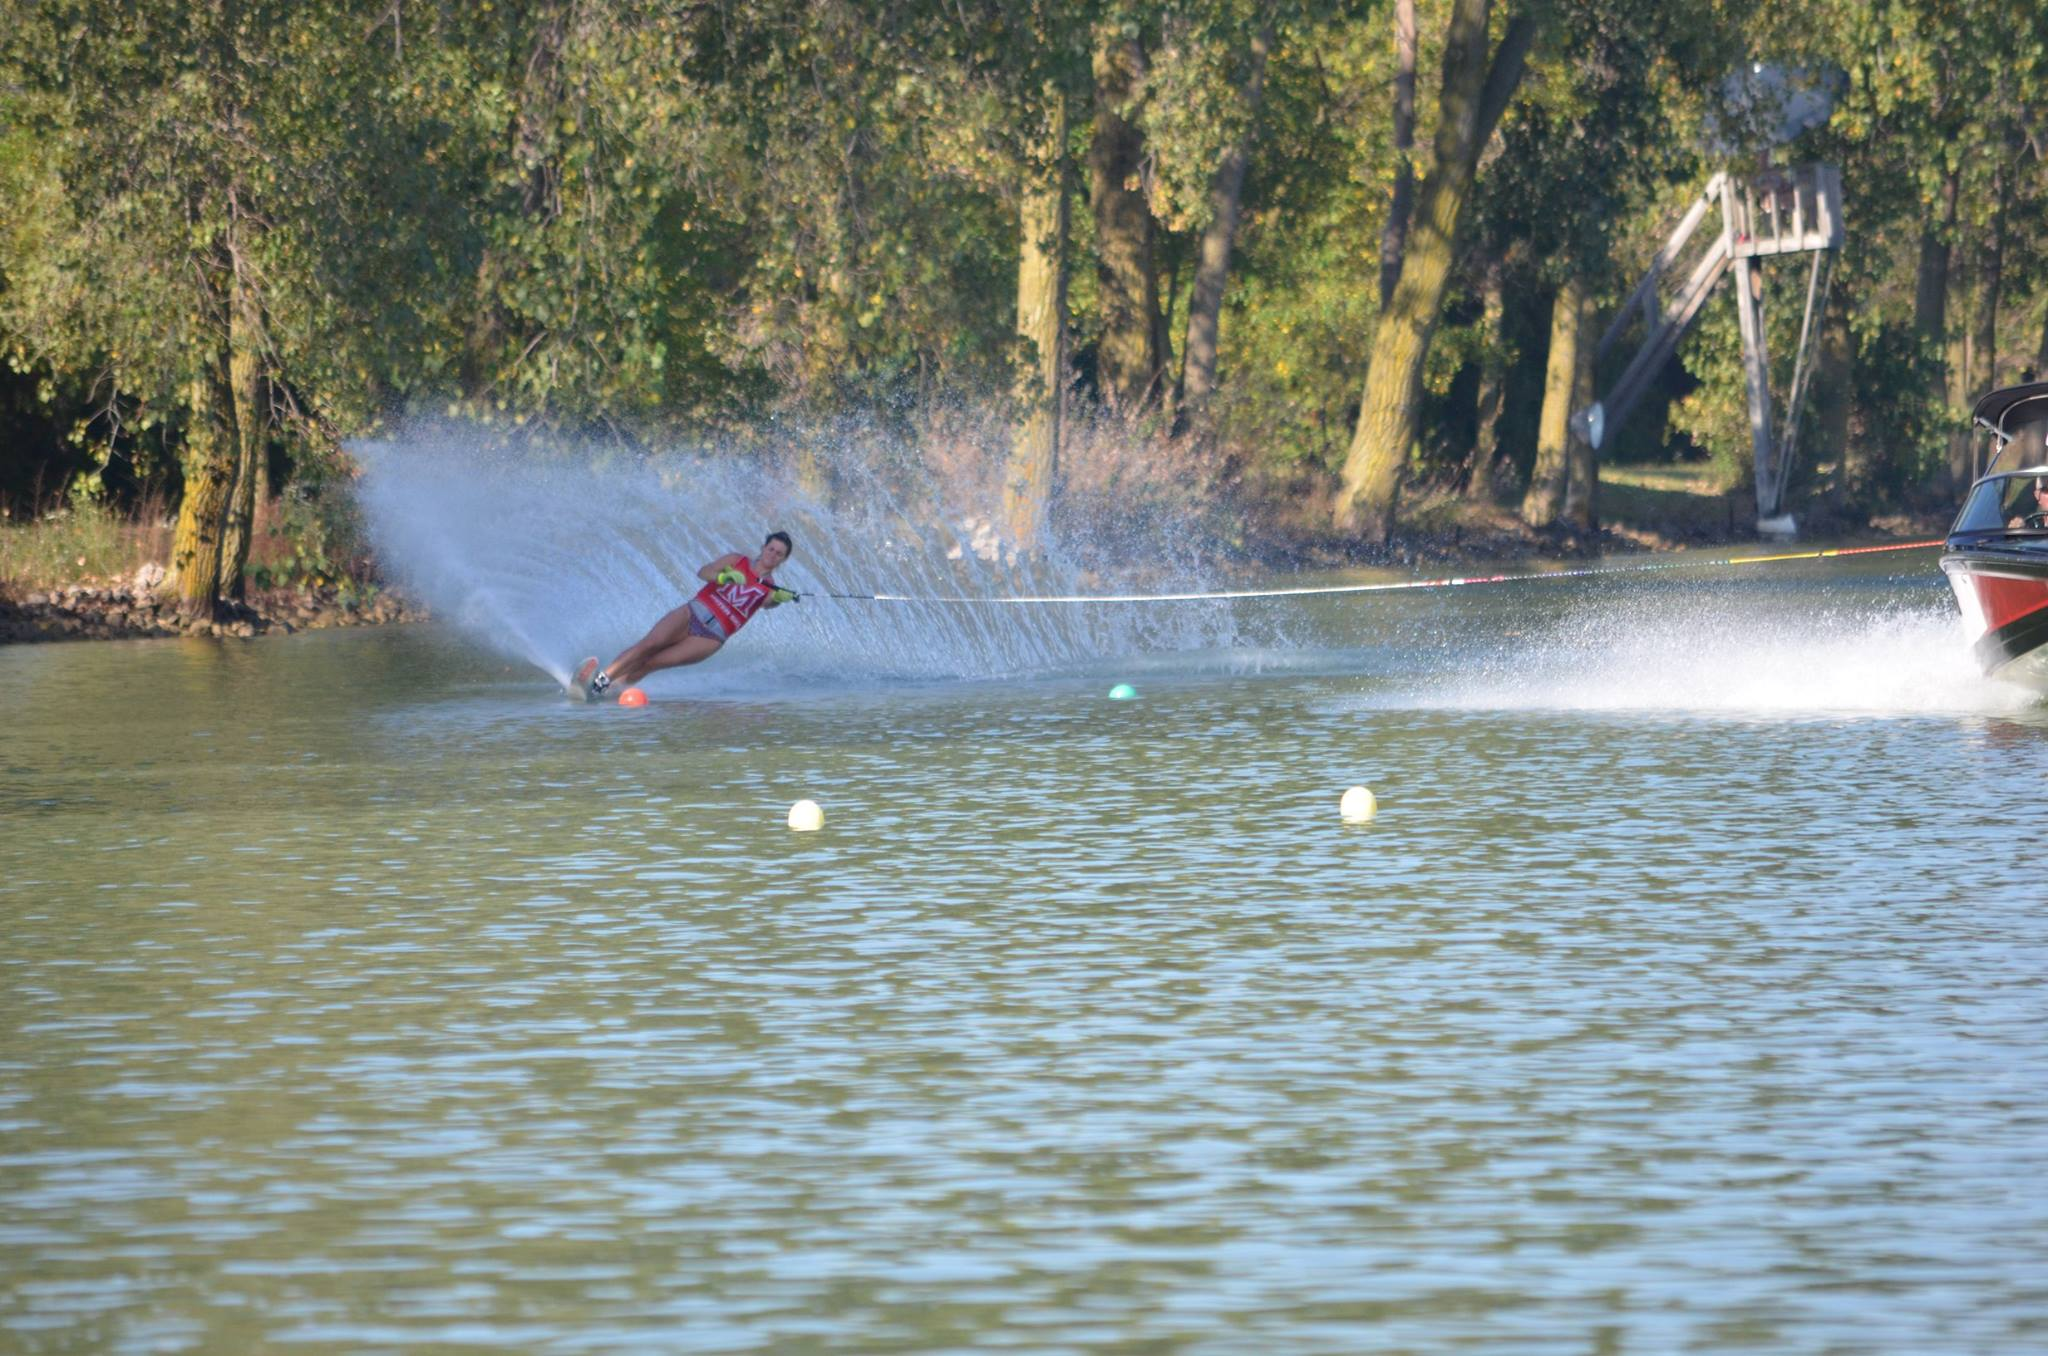 Miami water skier in action